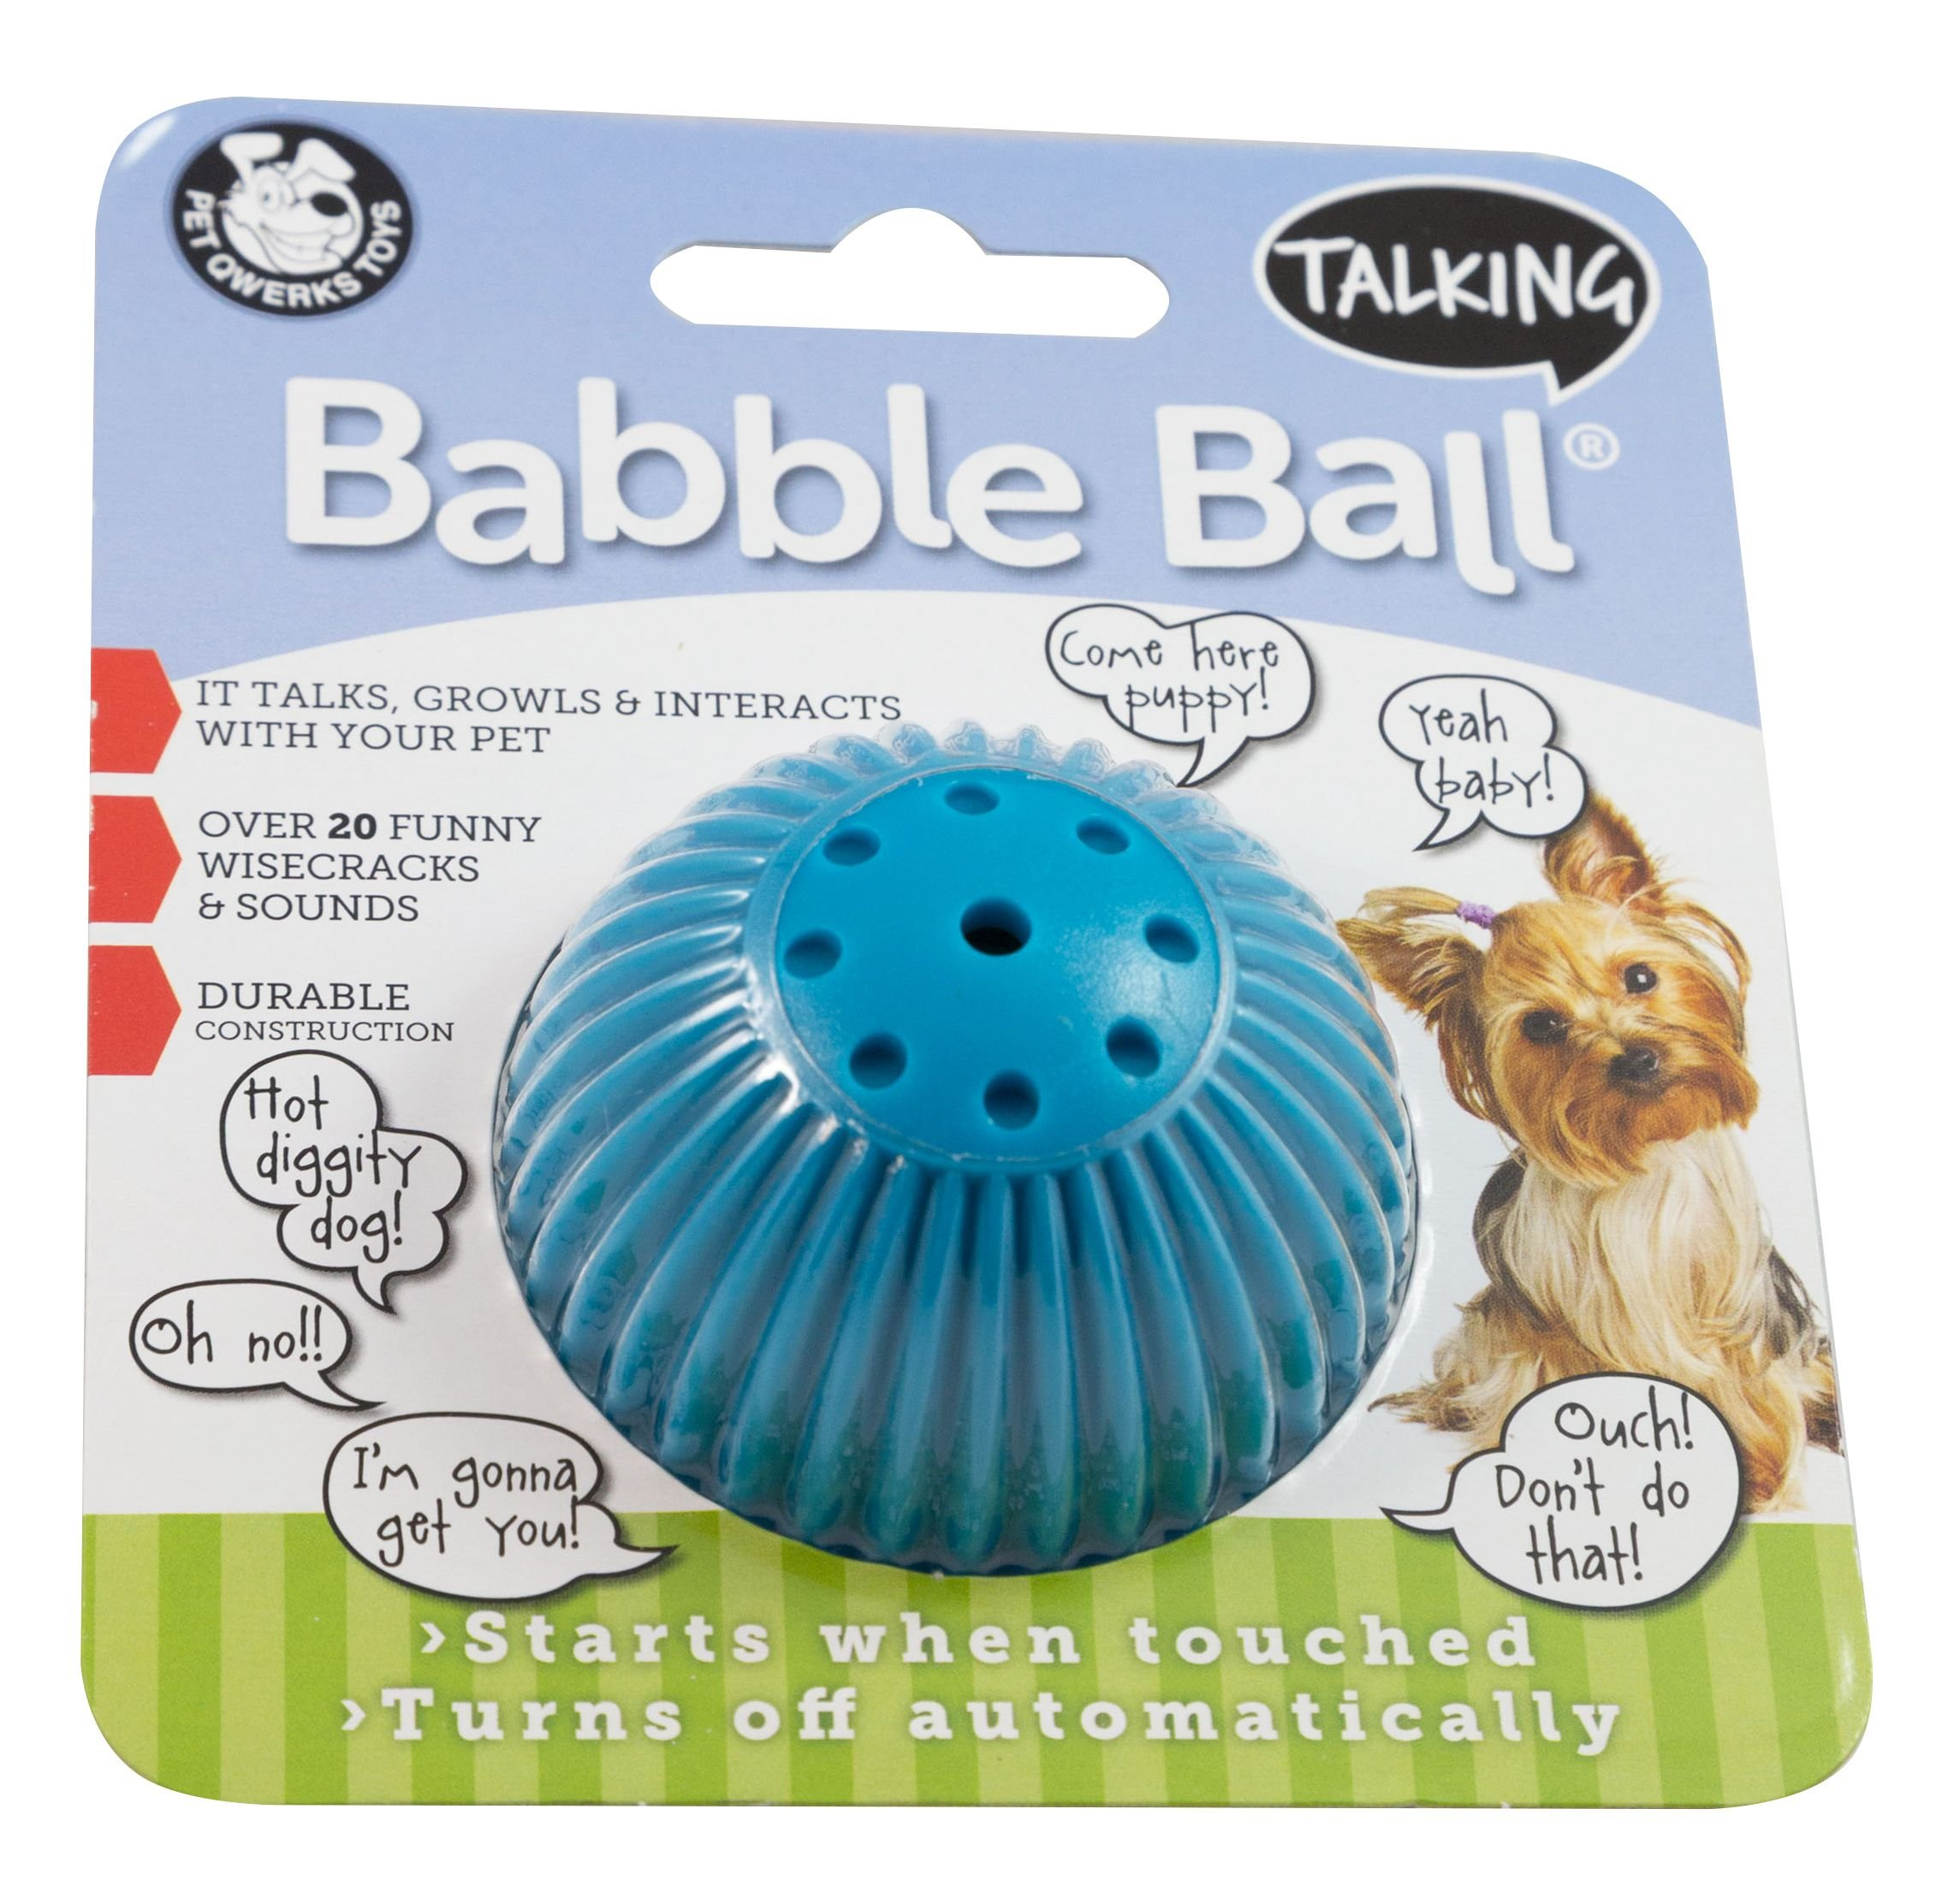 PetQwerks Talking Babble Ball Toy for Dogs and Cats, Small, by Pet Qwerks